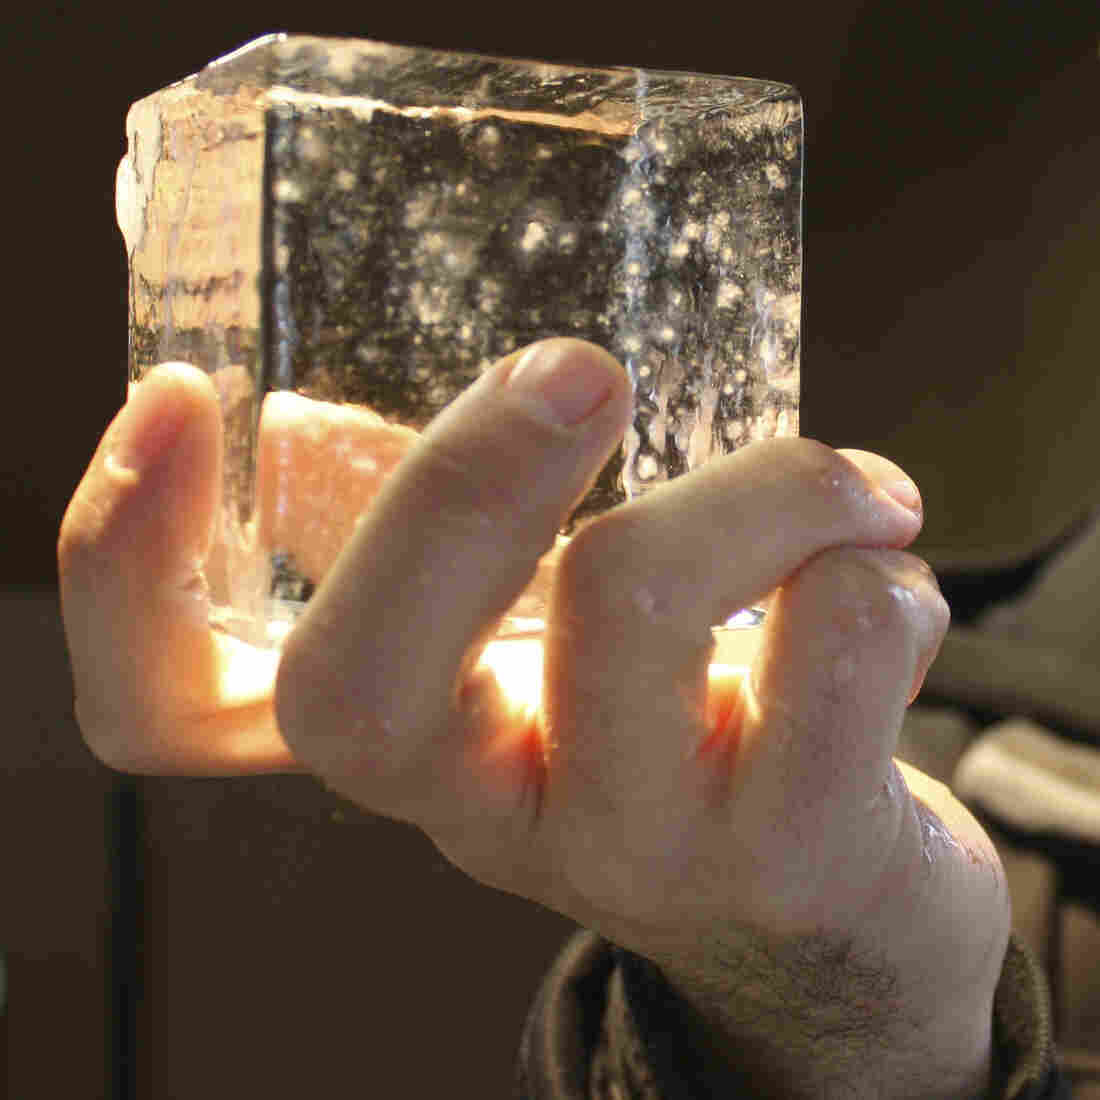 Joe Ambrose of Favourite Ice holds one of his crystal-clear artisanal cubes.